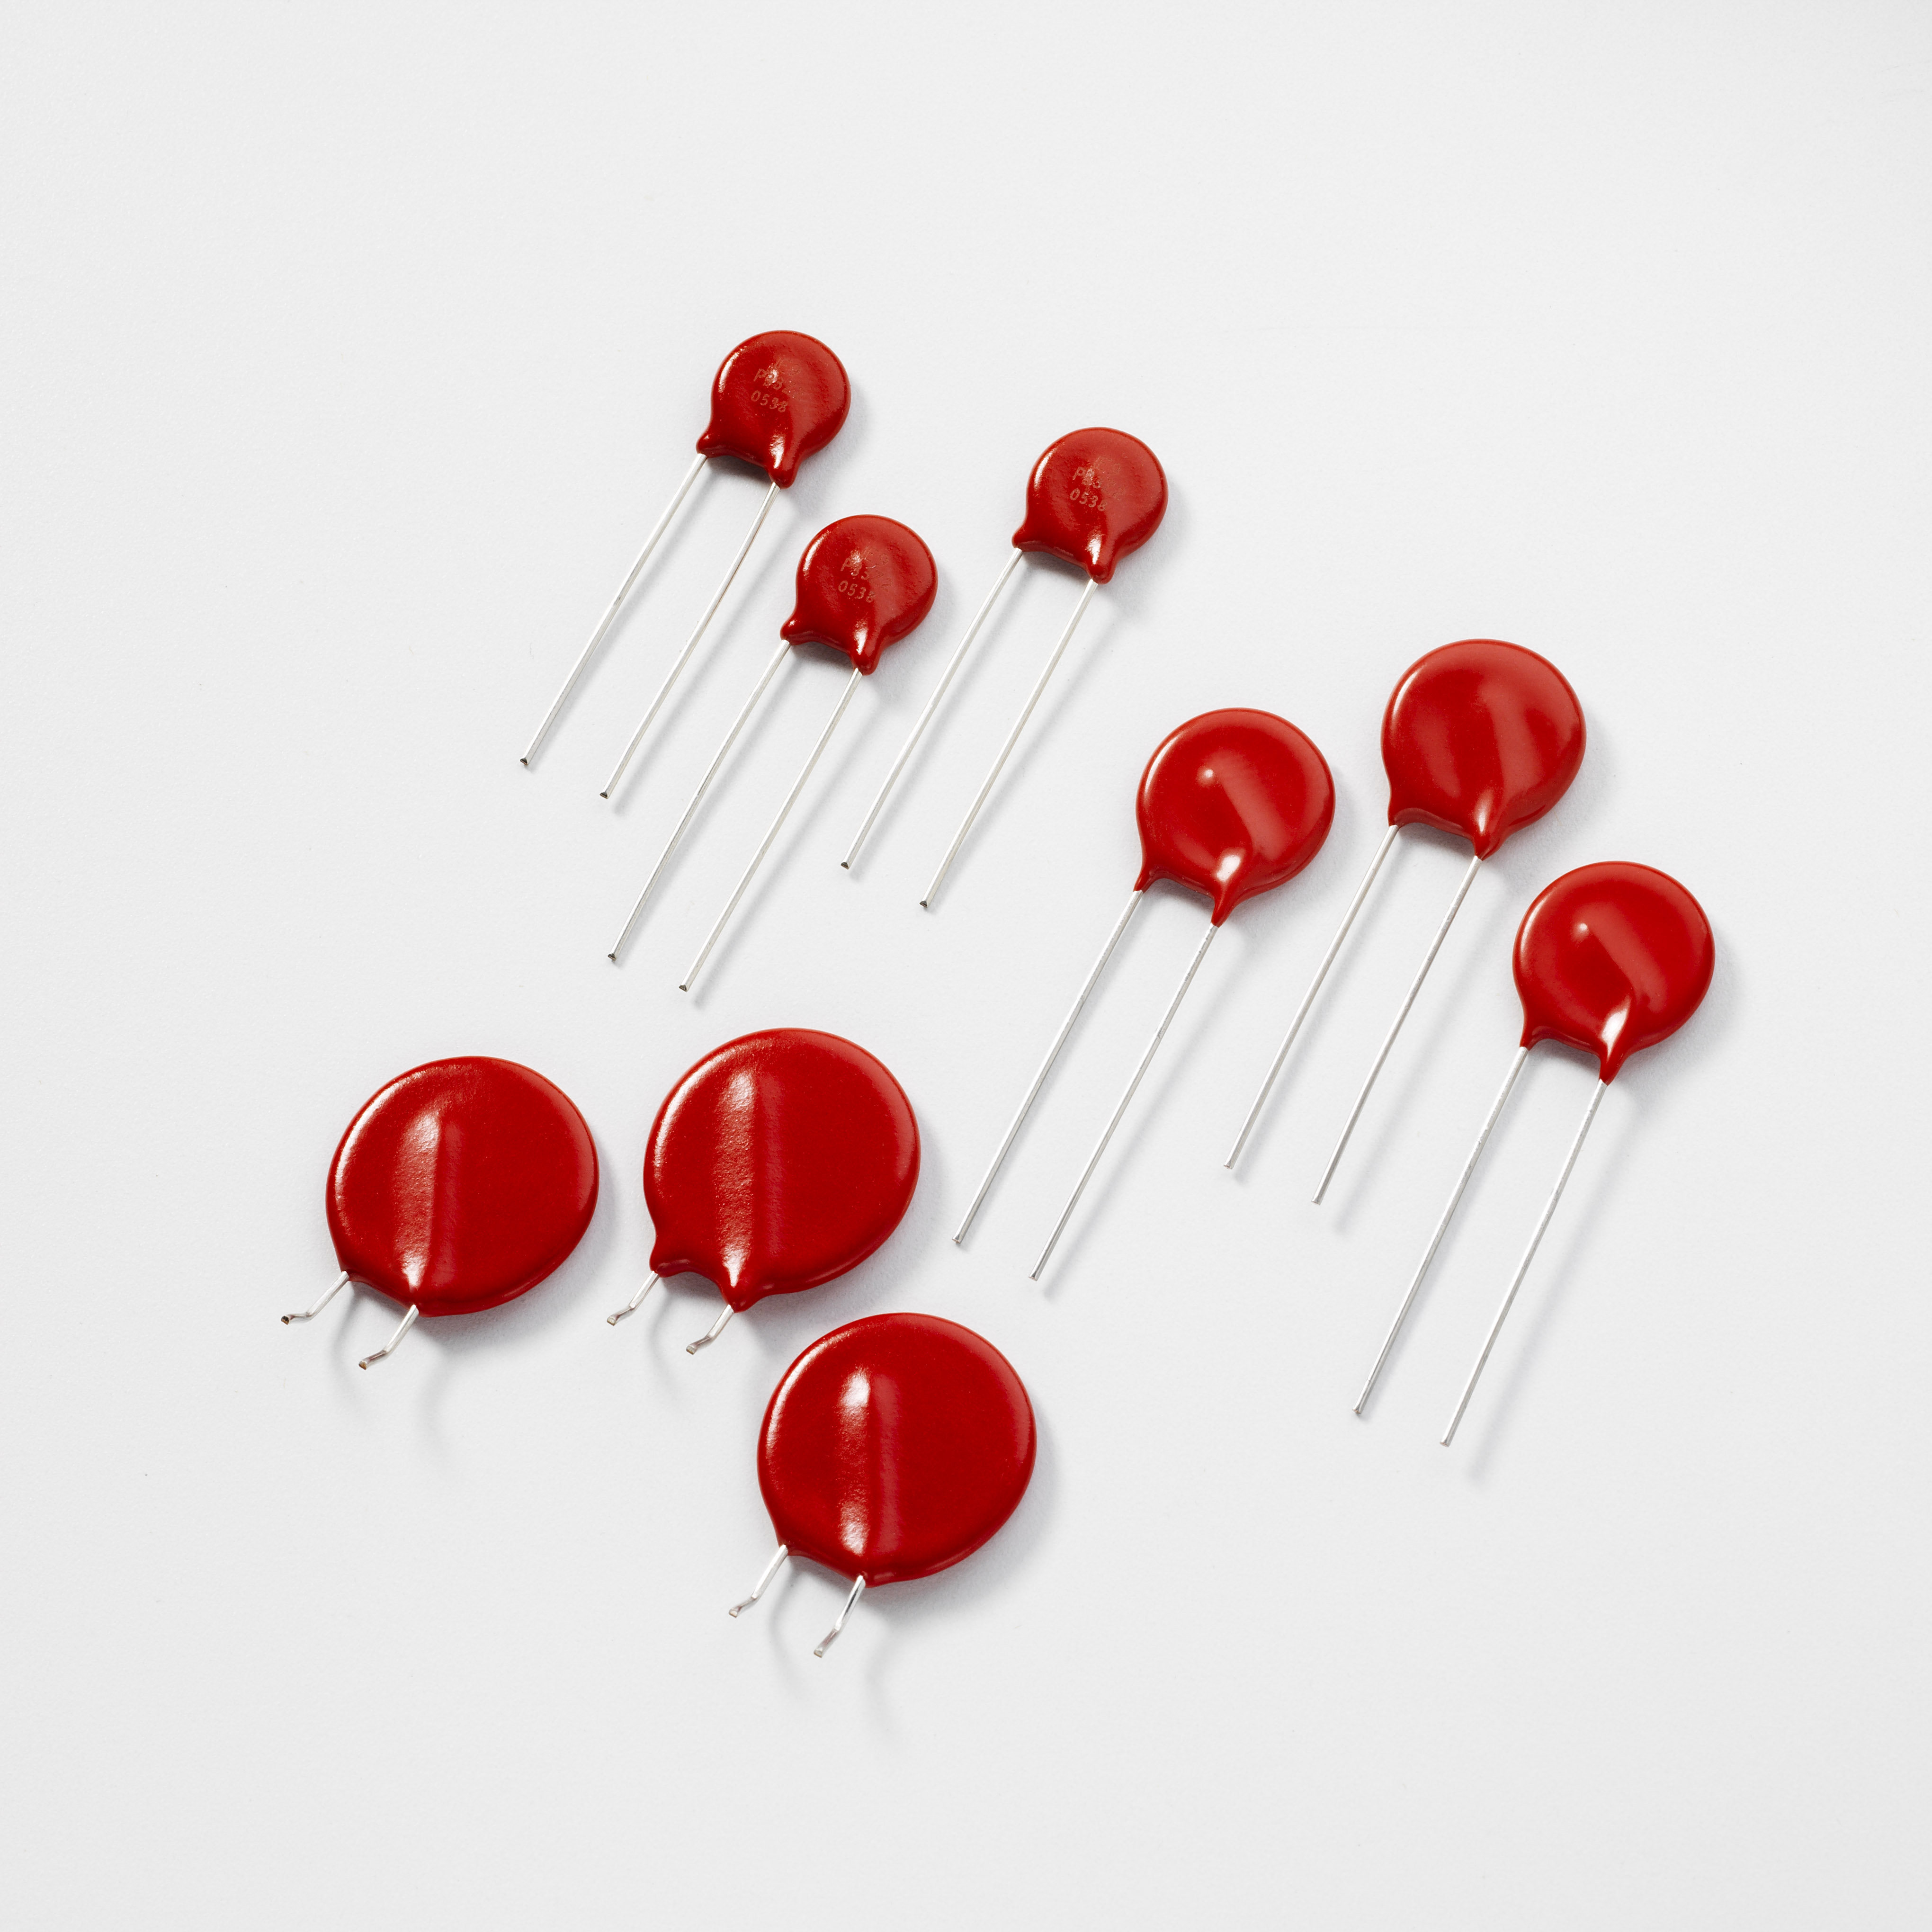 V300la40cp C Iii Series Radial Leaded From Varistors Littelfuse Anlittlefusecircuitprotectionliionlipoly